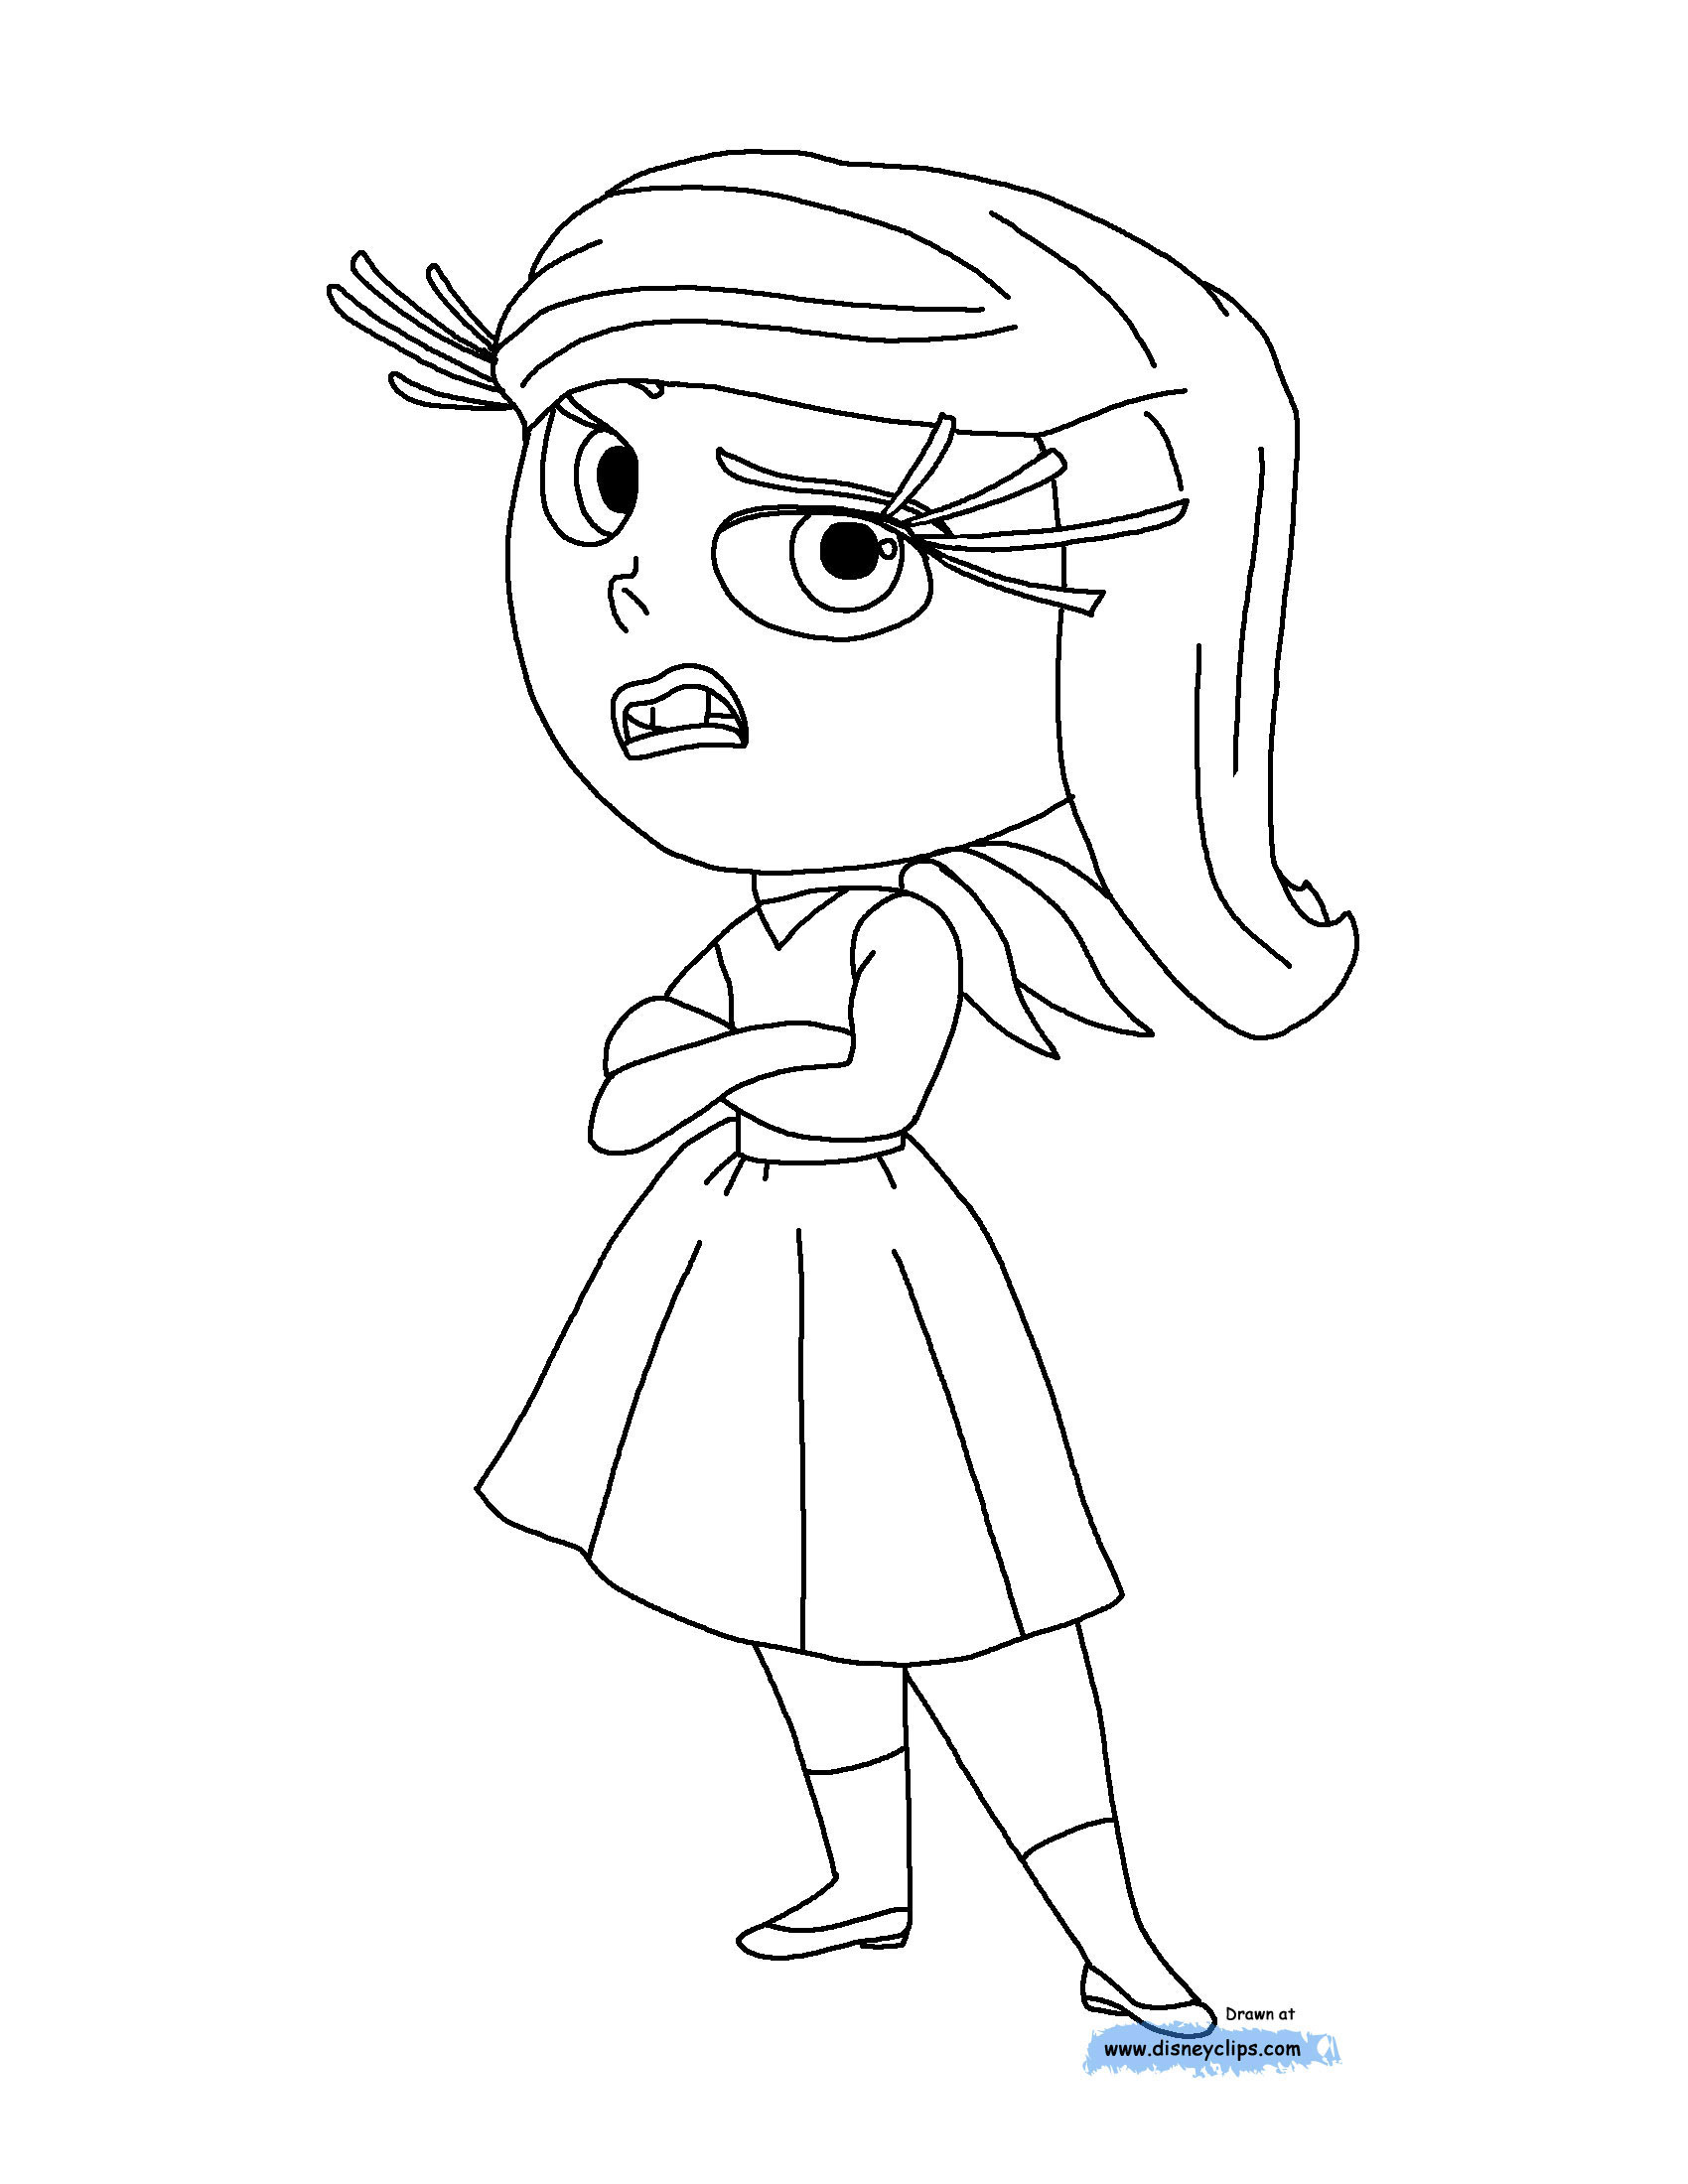 Disney S Inside Out Movie Amp Coloring Pages